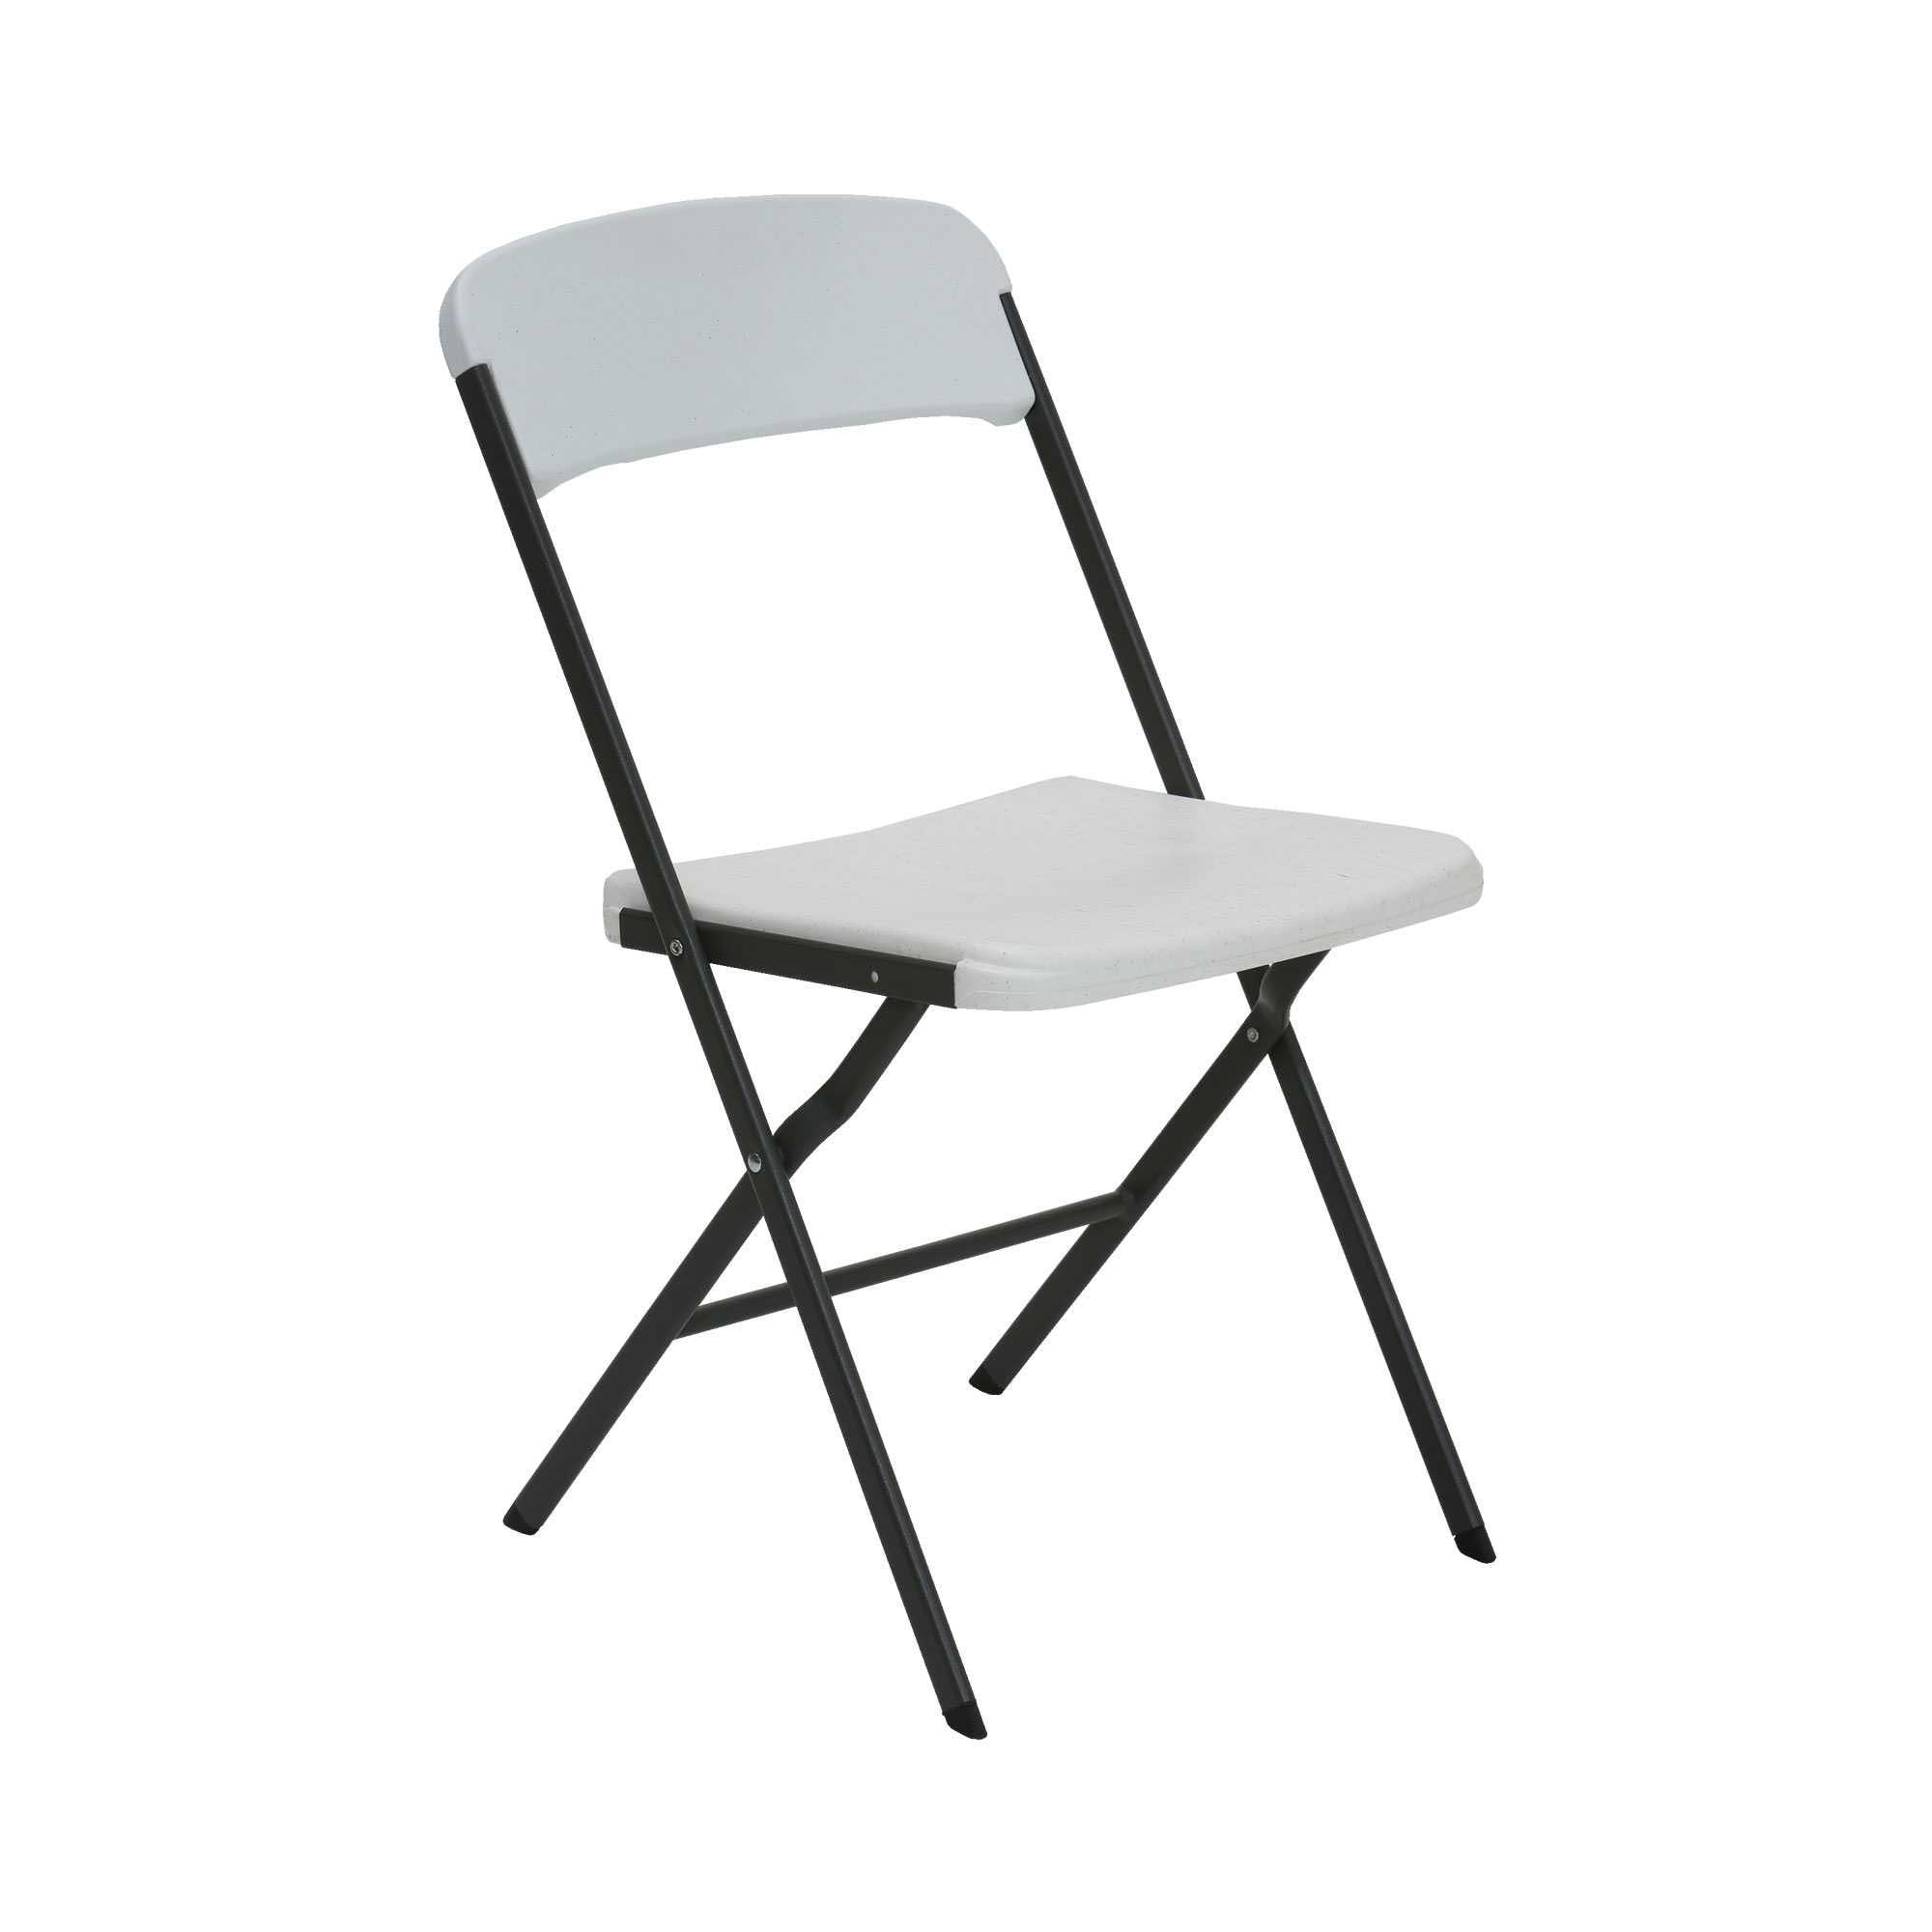 folding tables and chairs bulk indoor hanging egg chair with stand lifetime 684016 white granite 6 pack on sale today